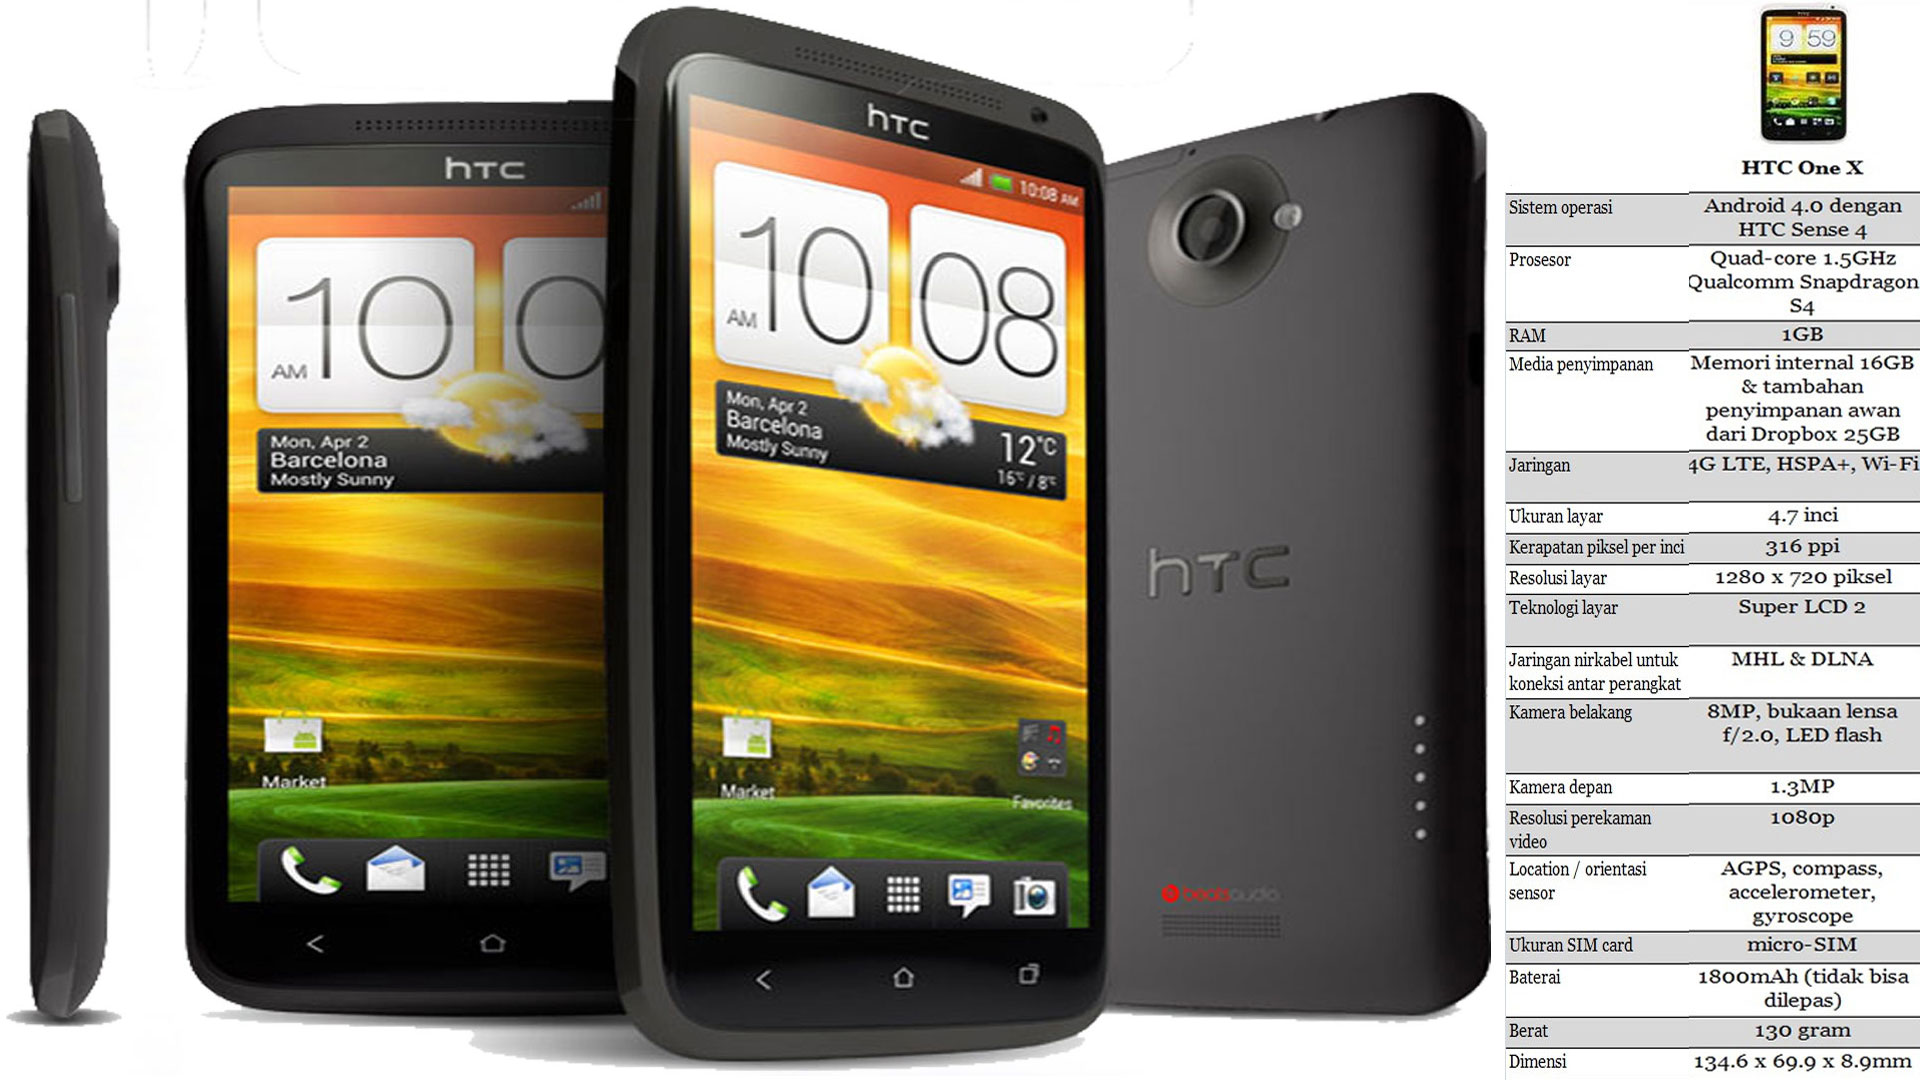 pics of htc one